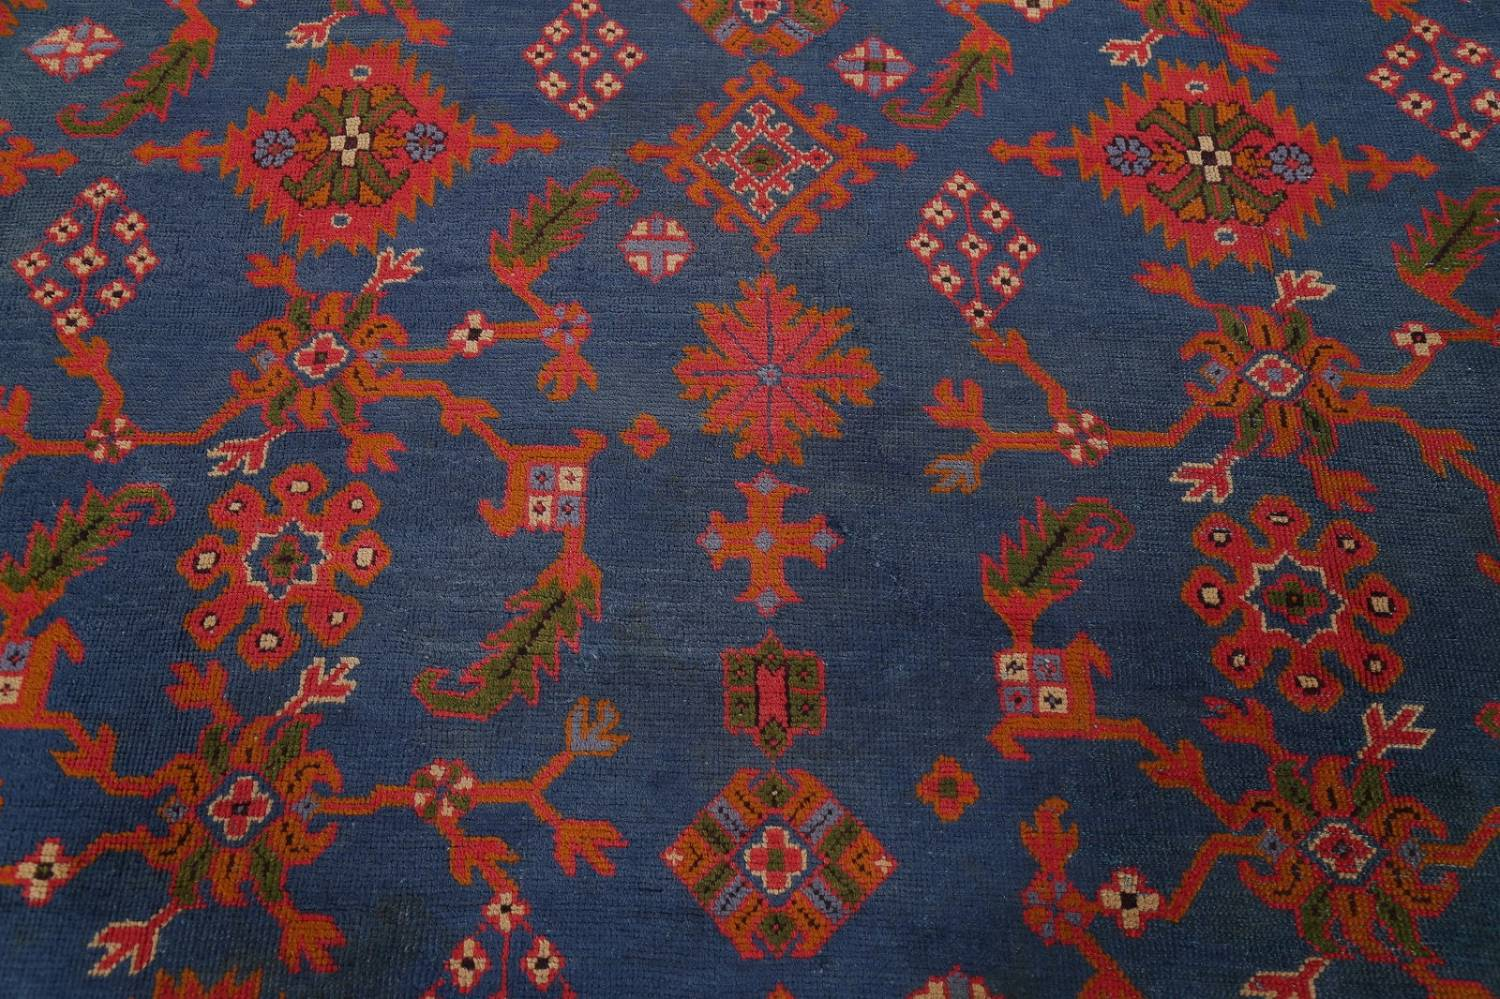 Antique Vegetable Dye Oushak Turkish Hand-Knotted Area Rug Wool 11x16 image 13